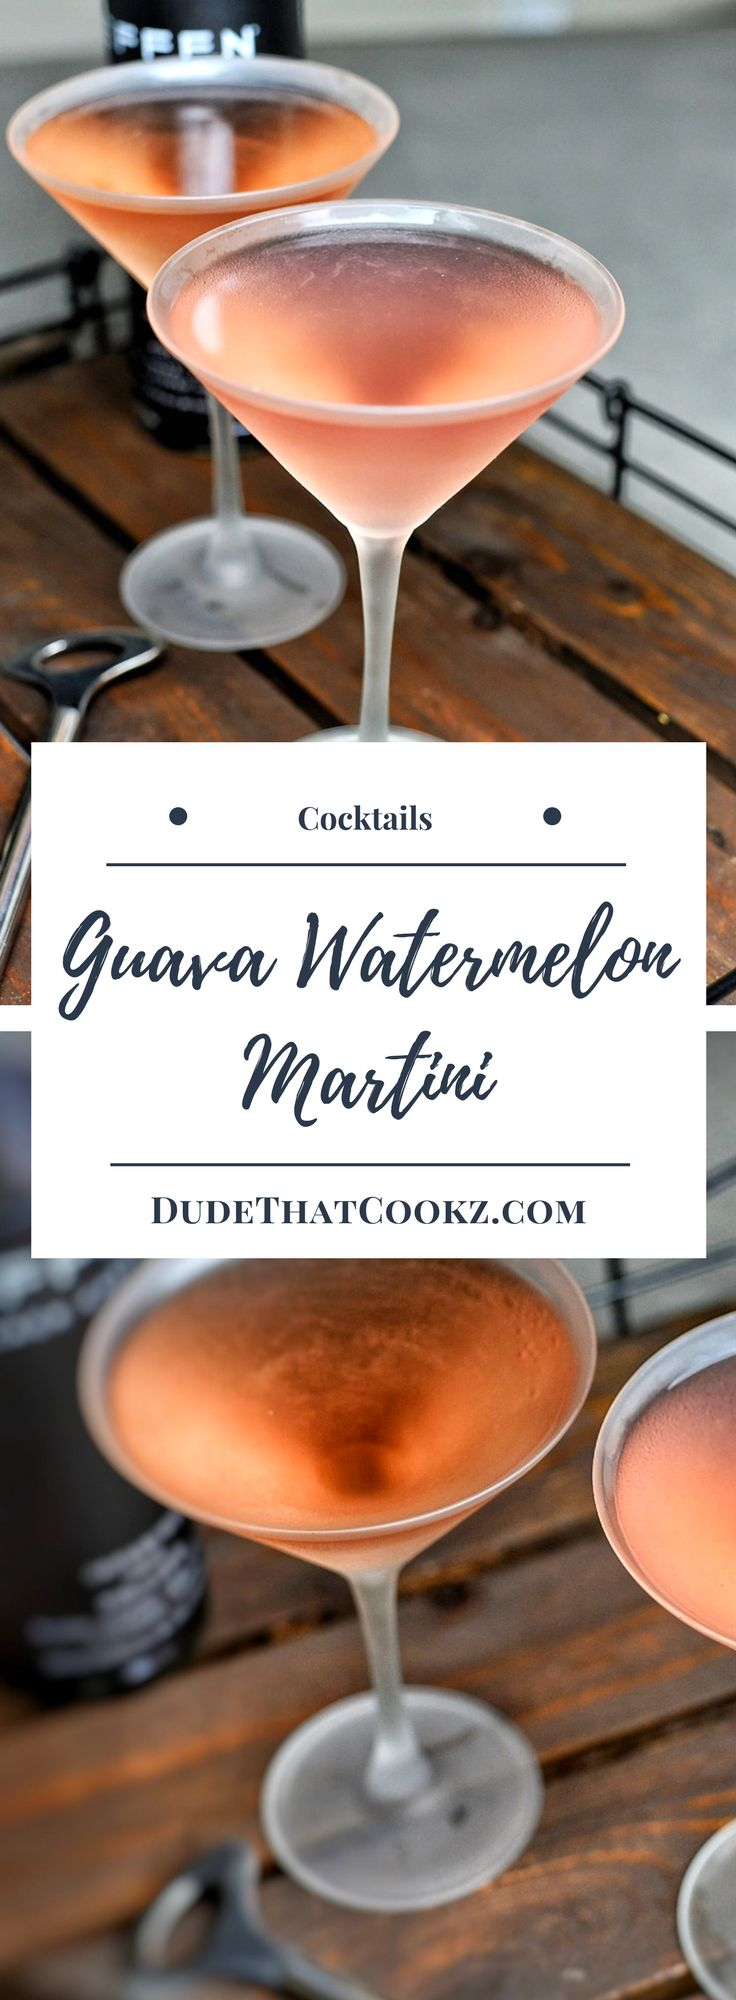 The weekend calls for cocktails and this martini will kick things off nicely. #martini #cocktails #cocktailrecipe #guava #watermelon